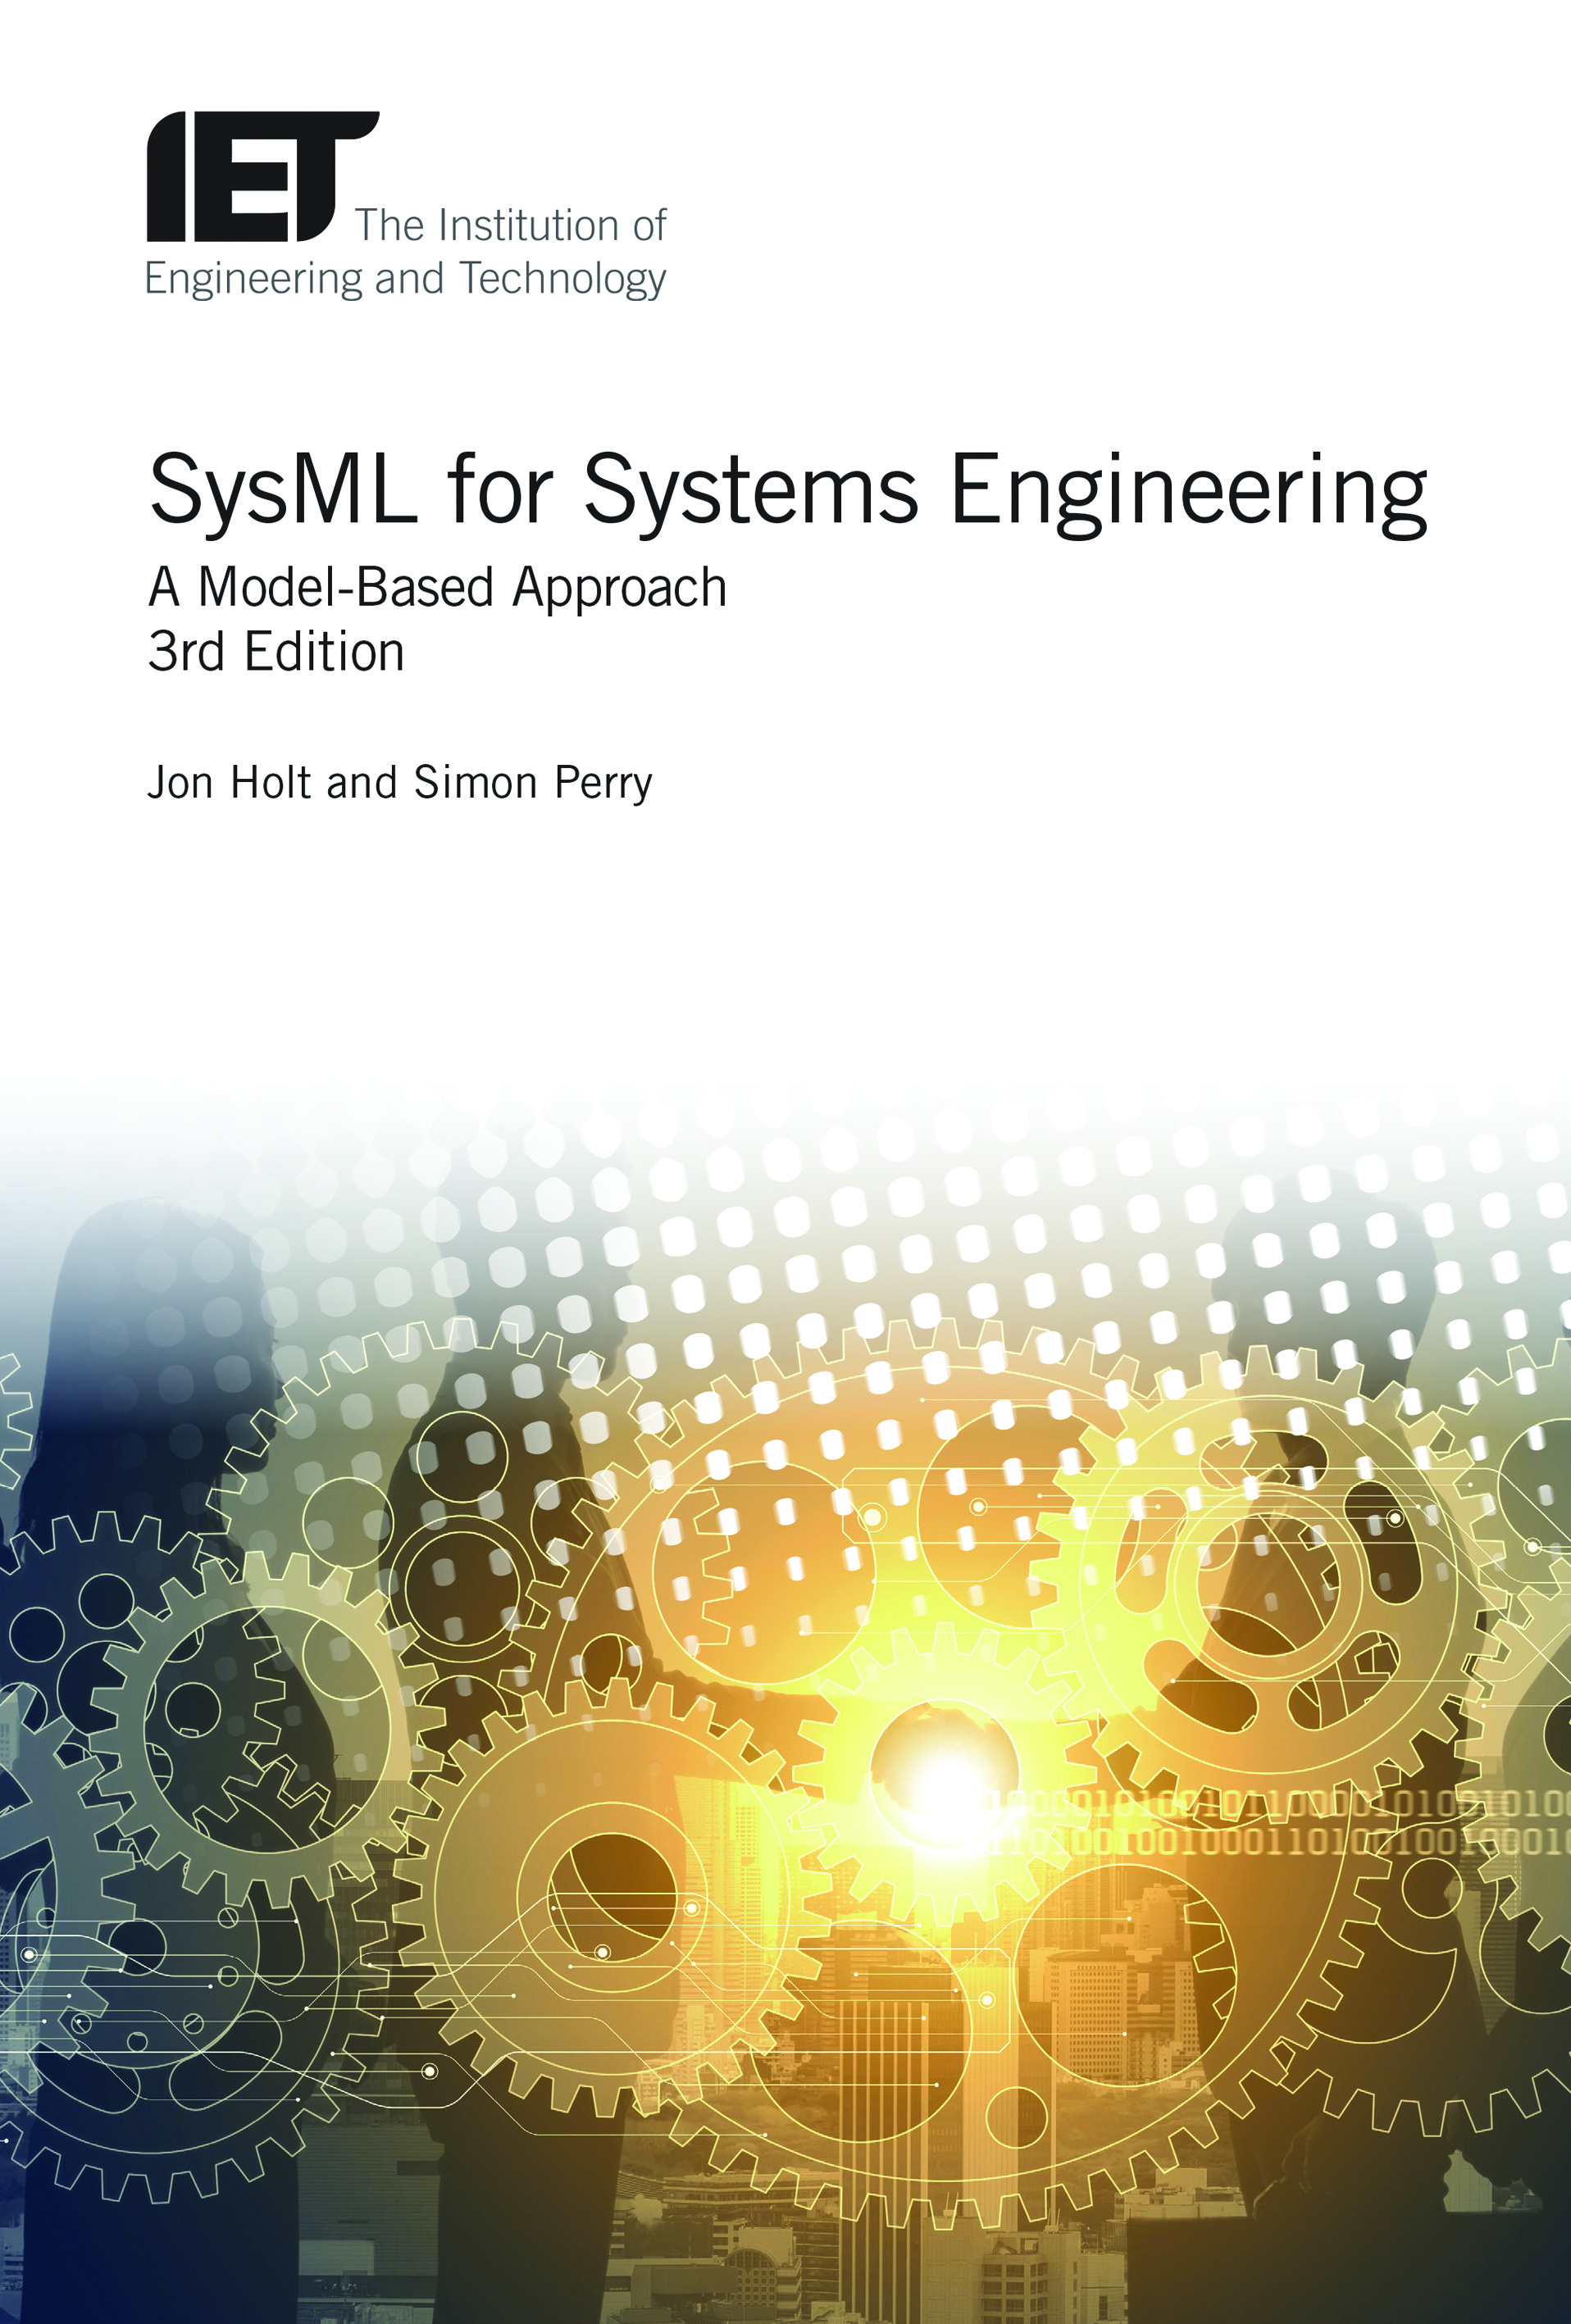 SysML for Systems Engineering, A model-based approach, 3rd Edition